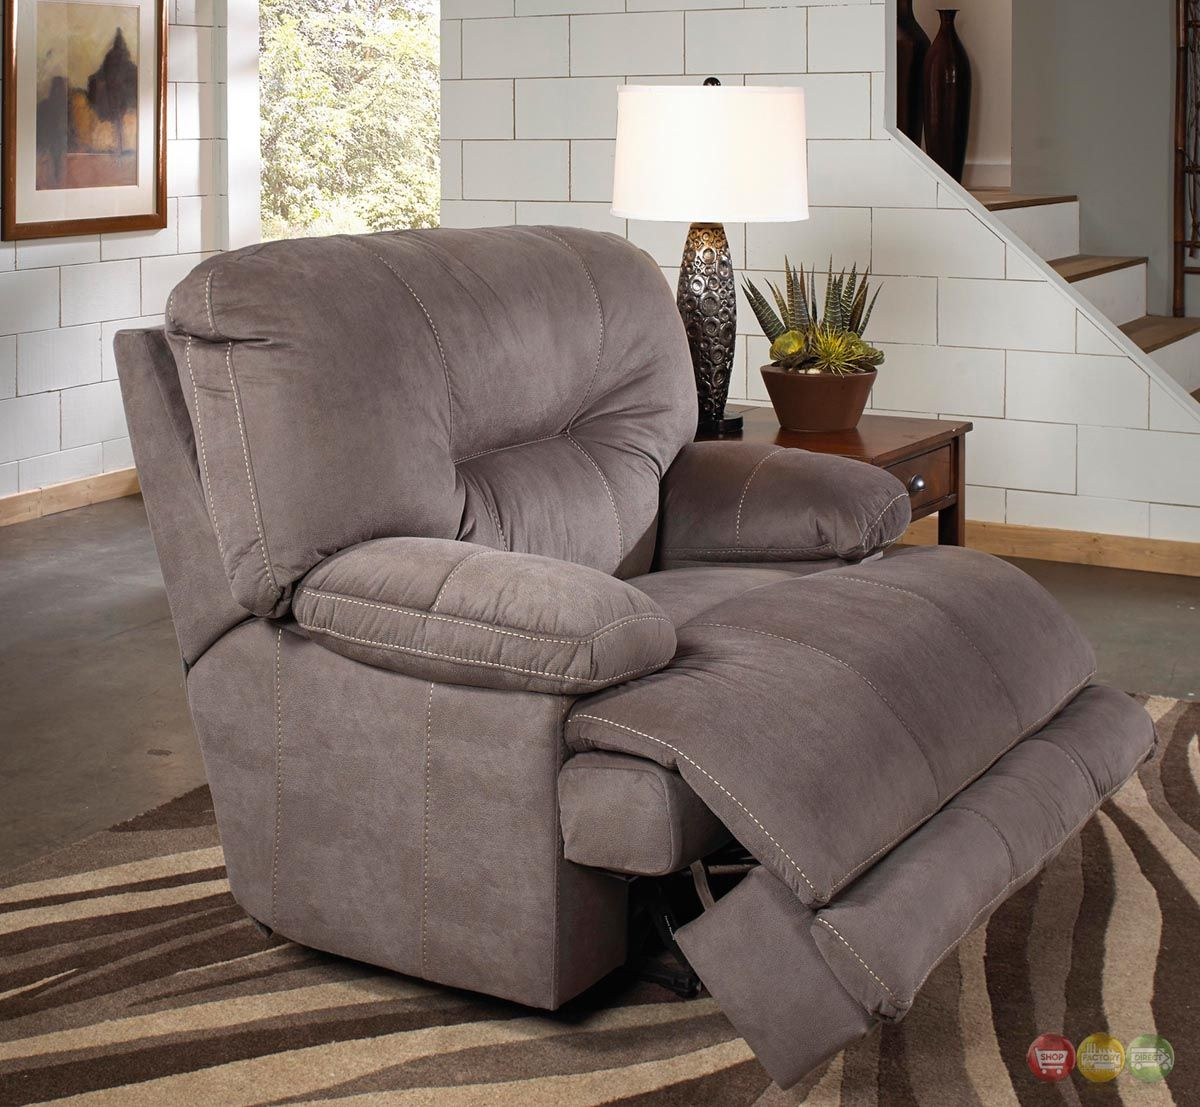 Lay Flat Recliner Chairs Funky Chair Bed Noble Slate Gray Cuddler Oversized Reclining